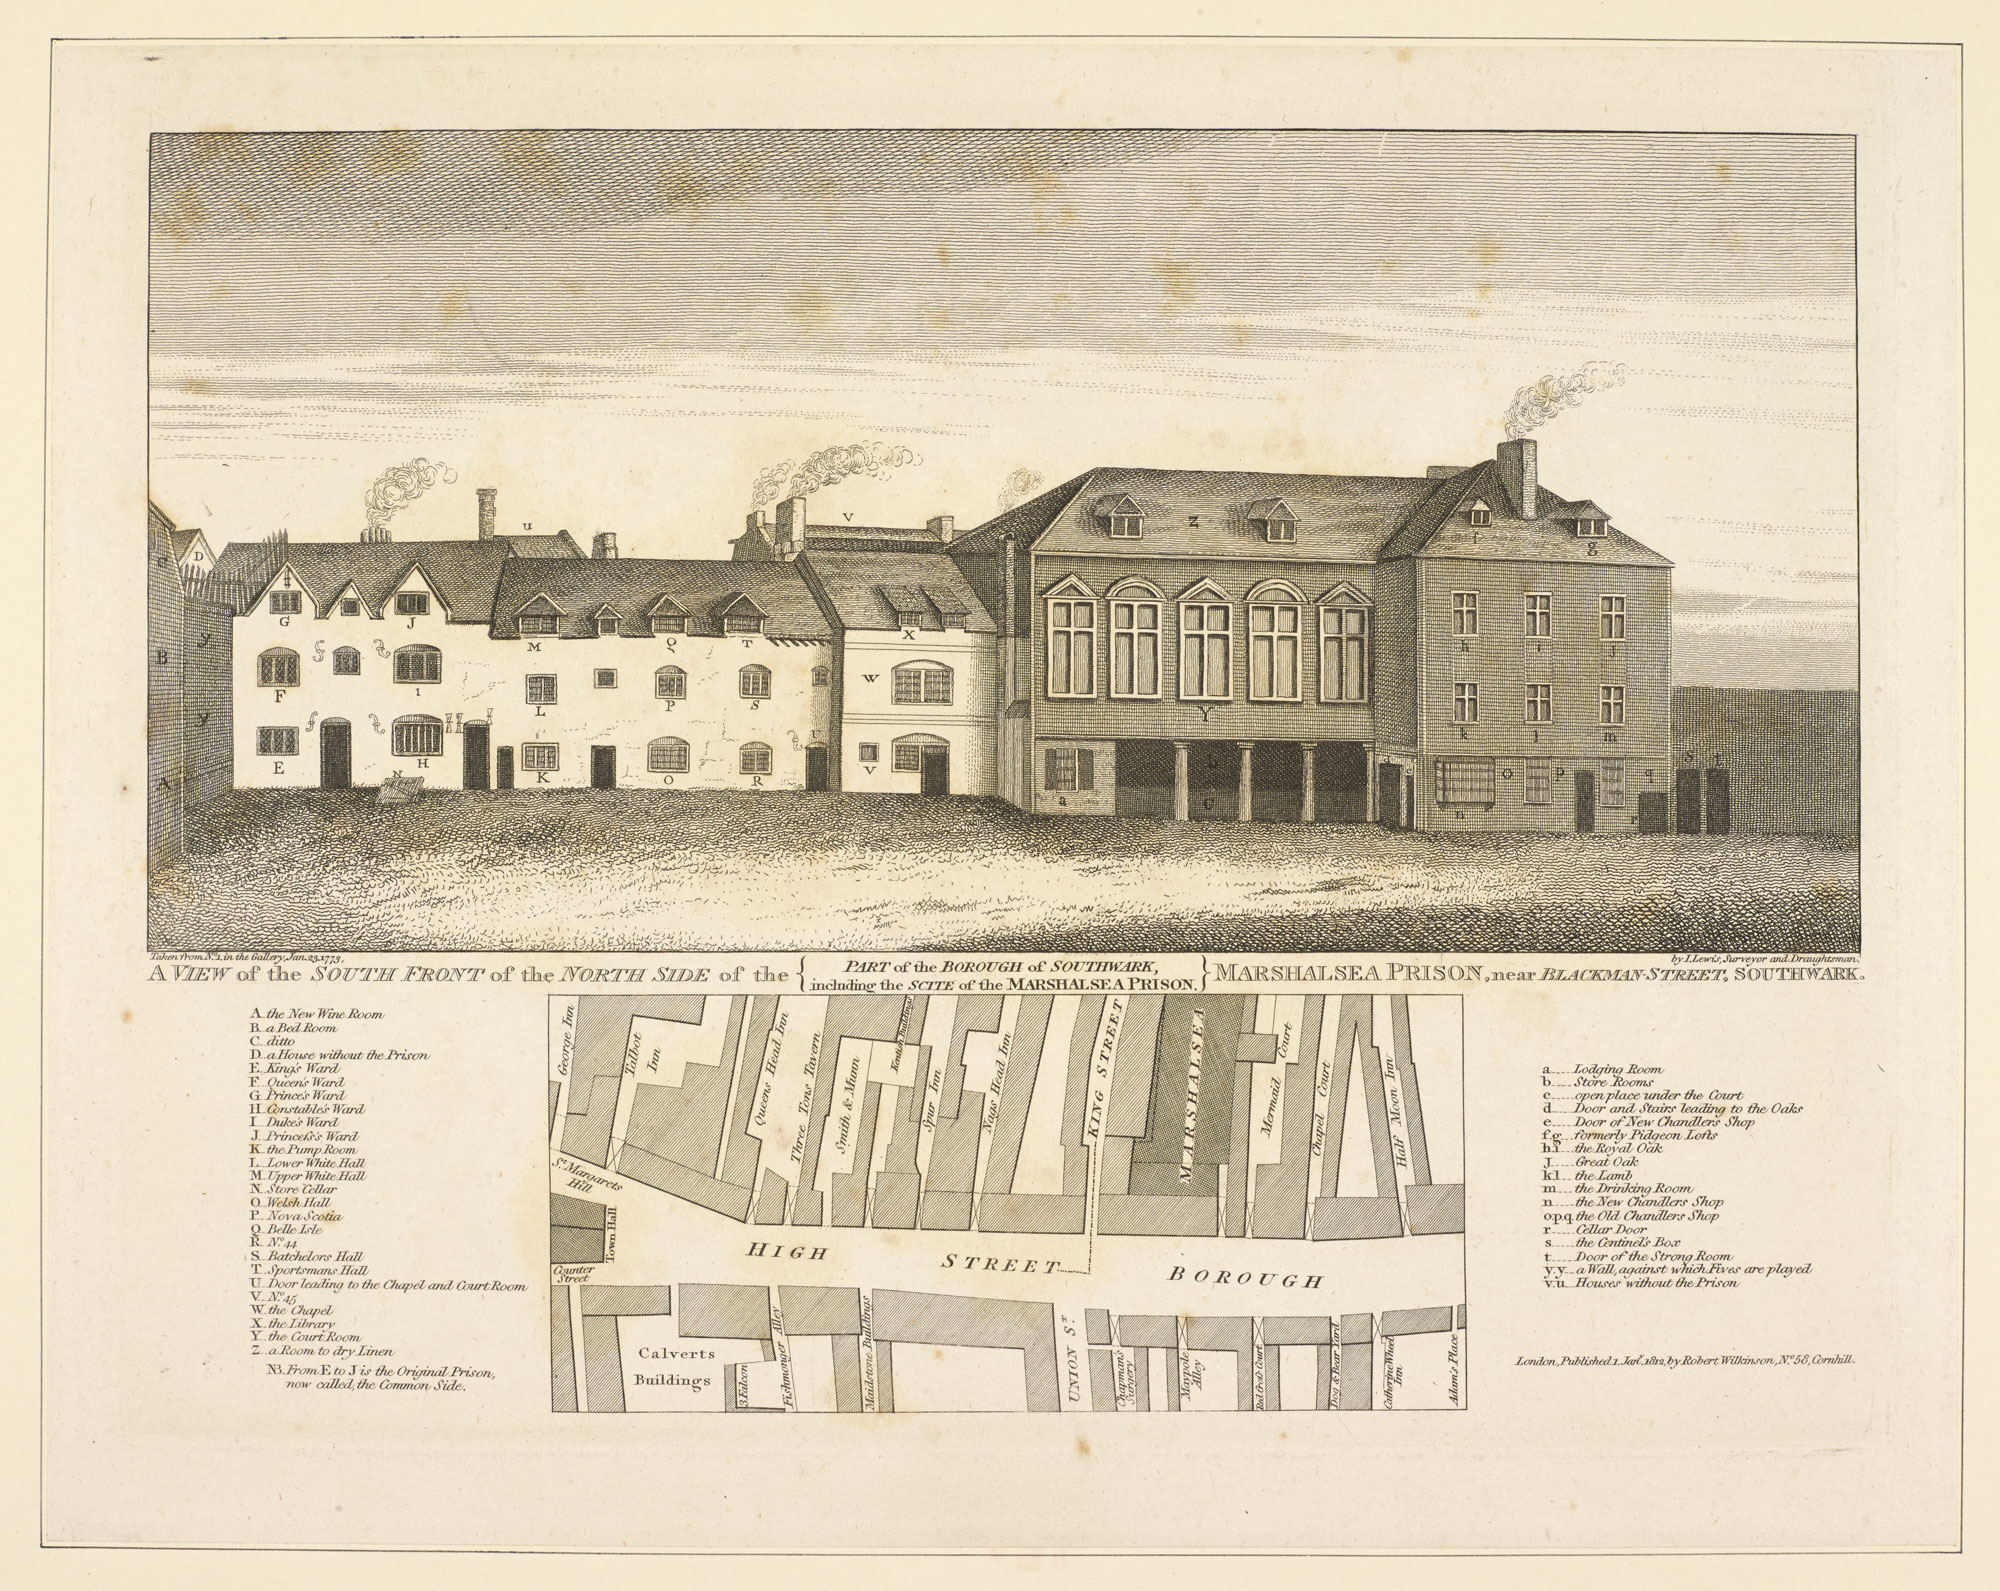 Engraving of the Marshall Sea Prison, where Dickens's father was imprisoned [page: 78]